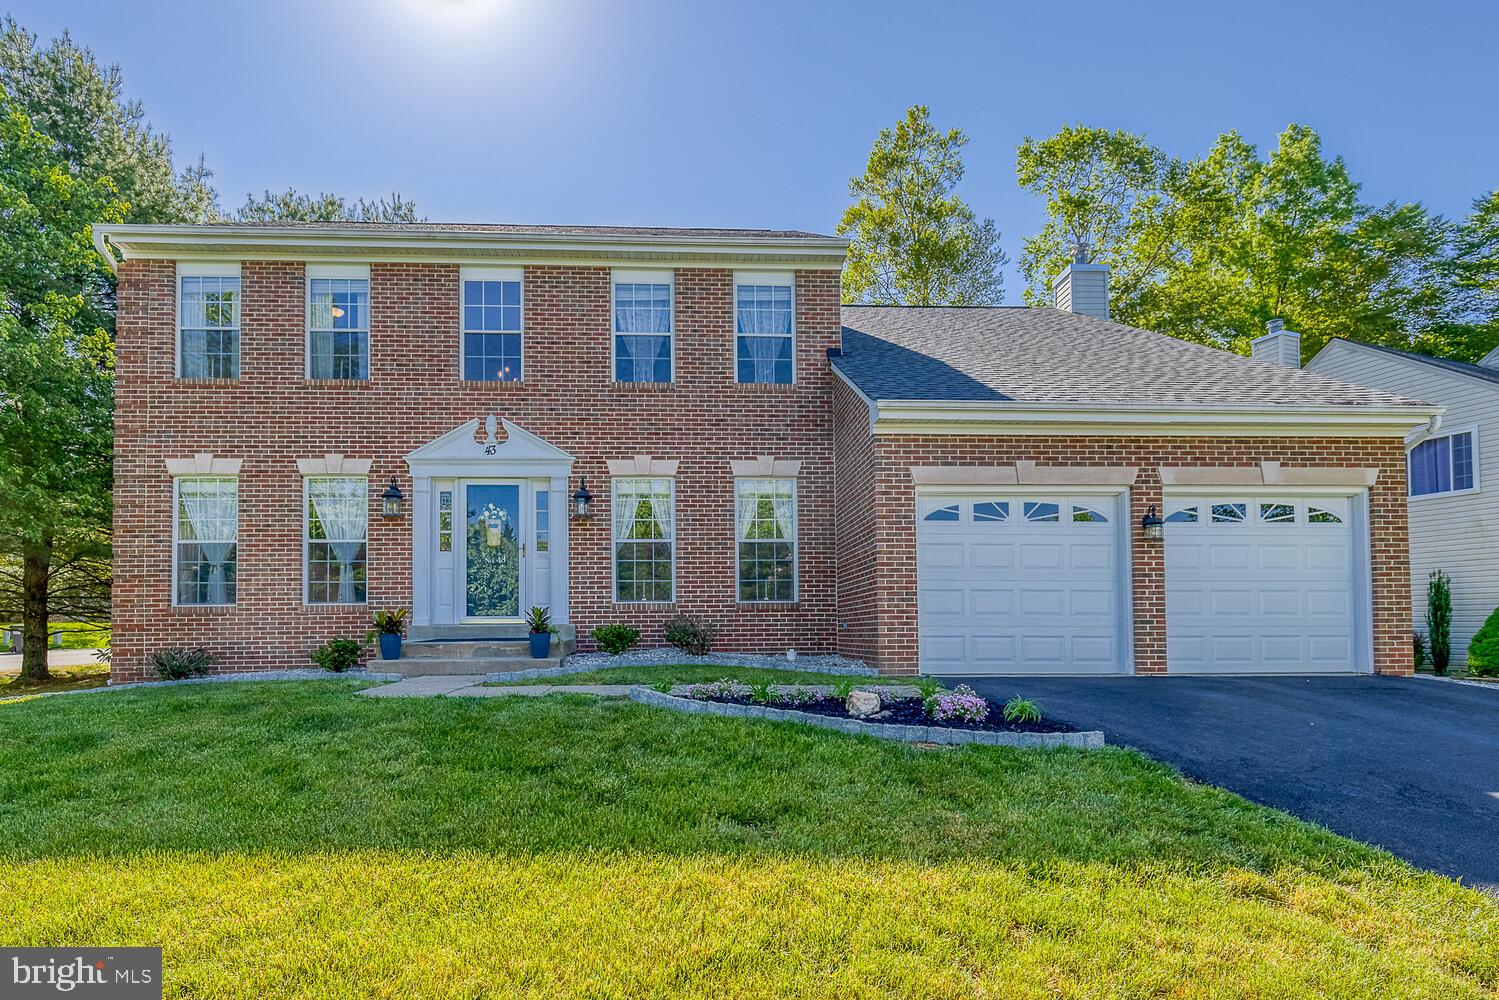 This beautiful brick-front home, situated on a corner lot, shows pride in homeownership. You will no